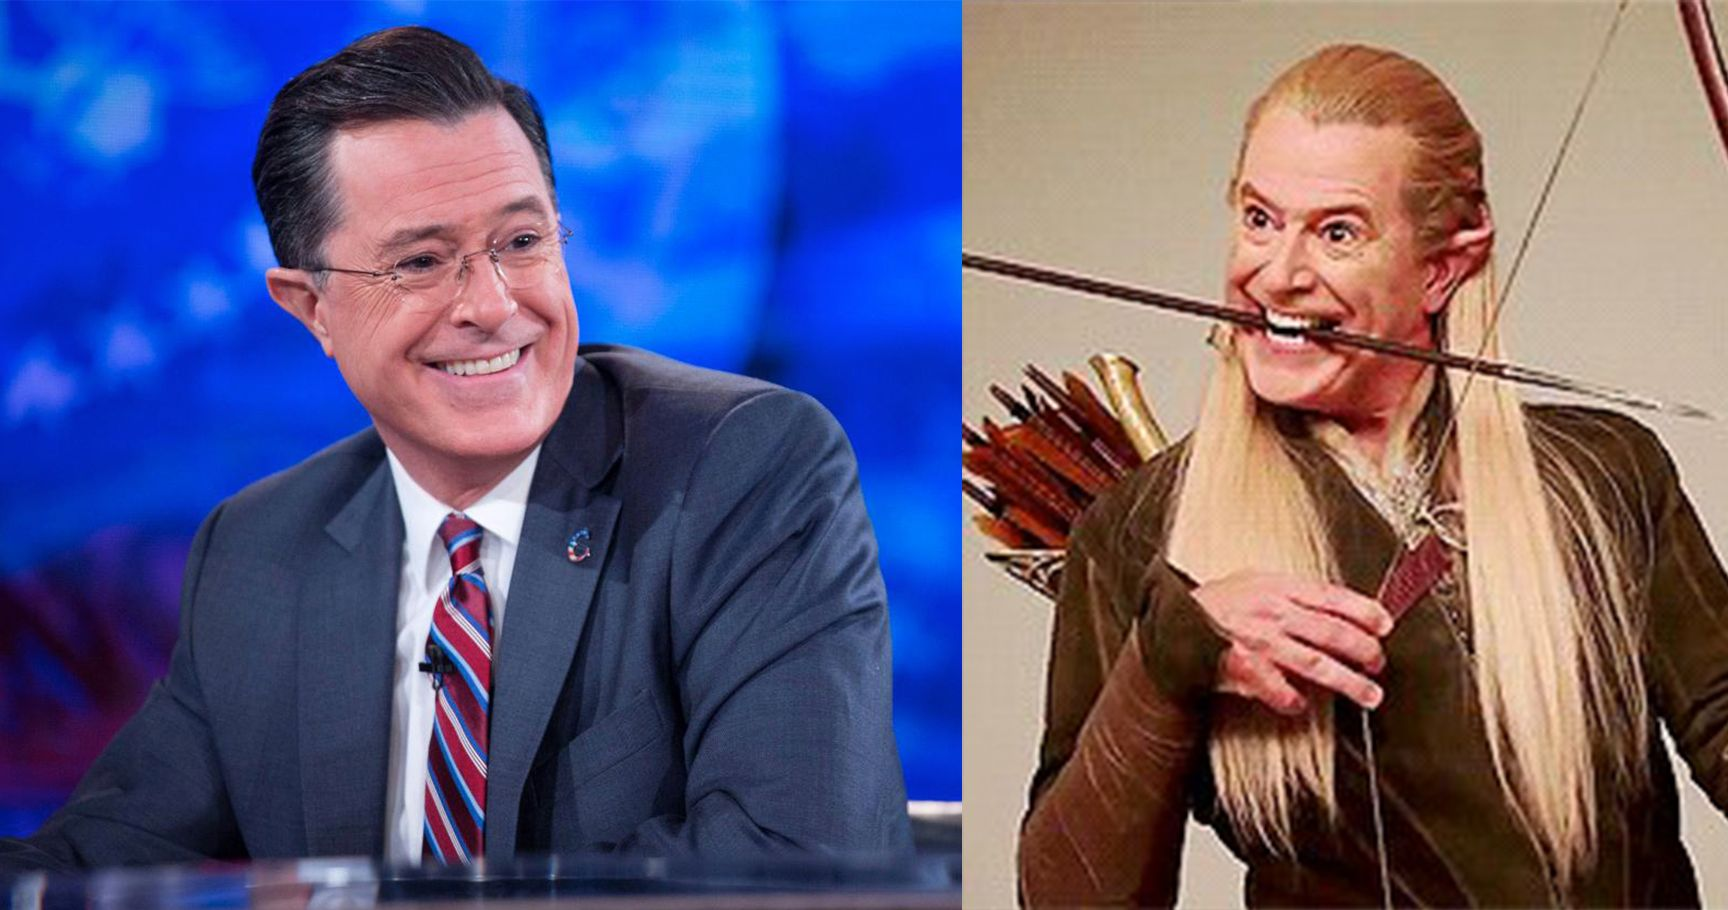 16 Times Stephen Colbert Hilariously Fangirled Over 'The Lord Of The Rings'